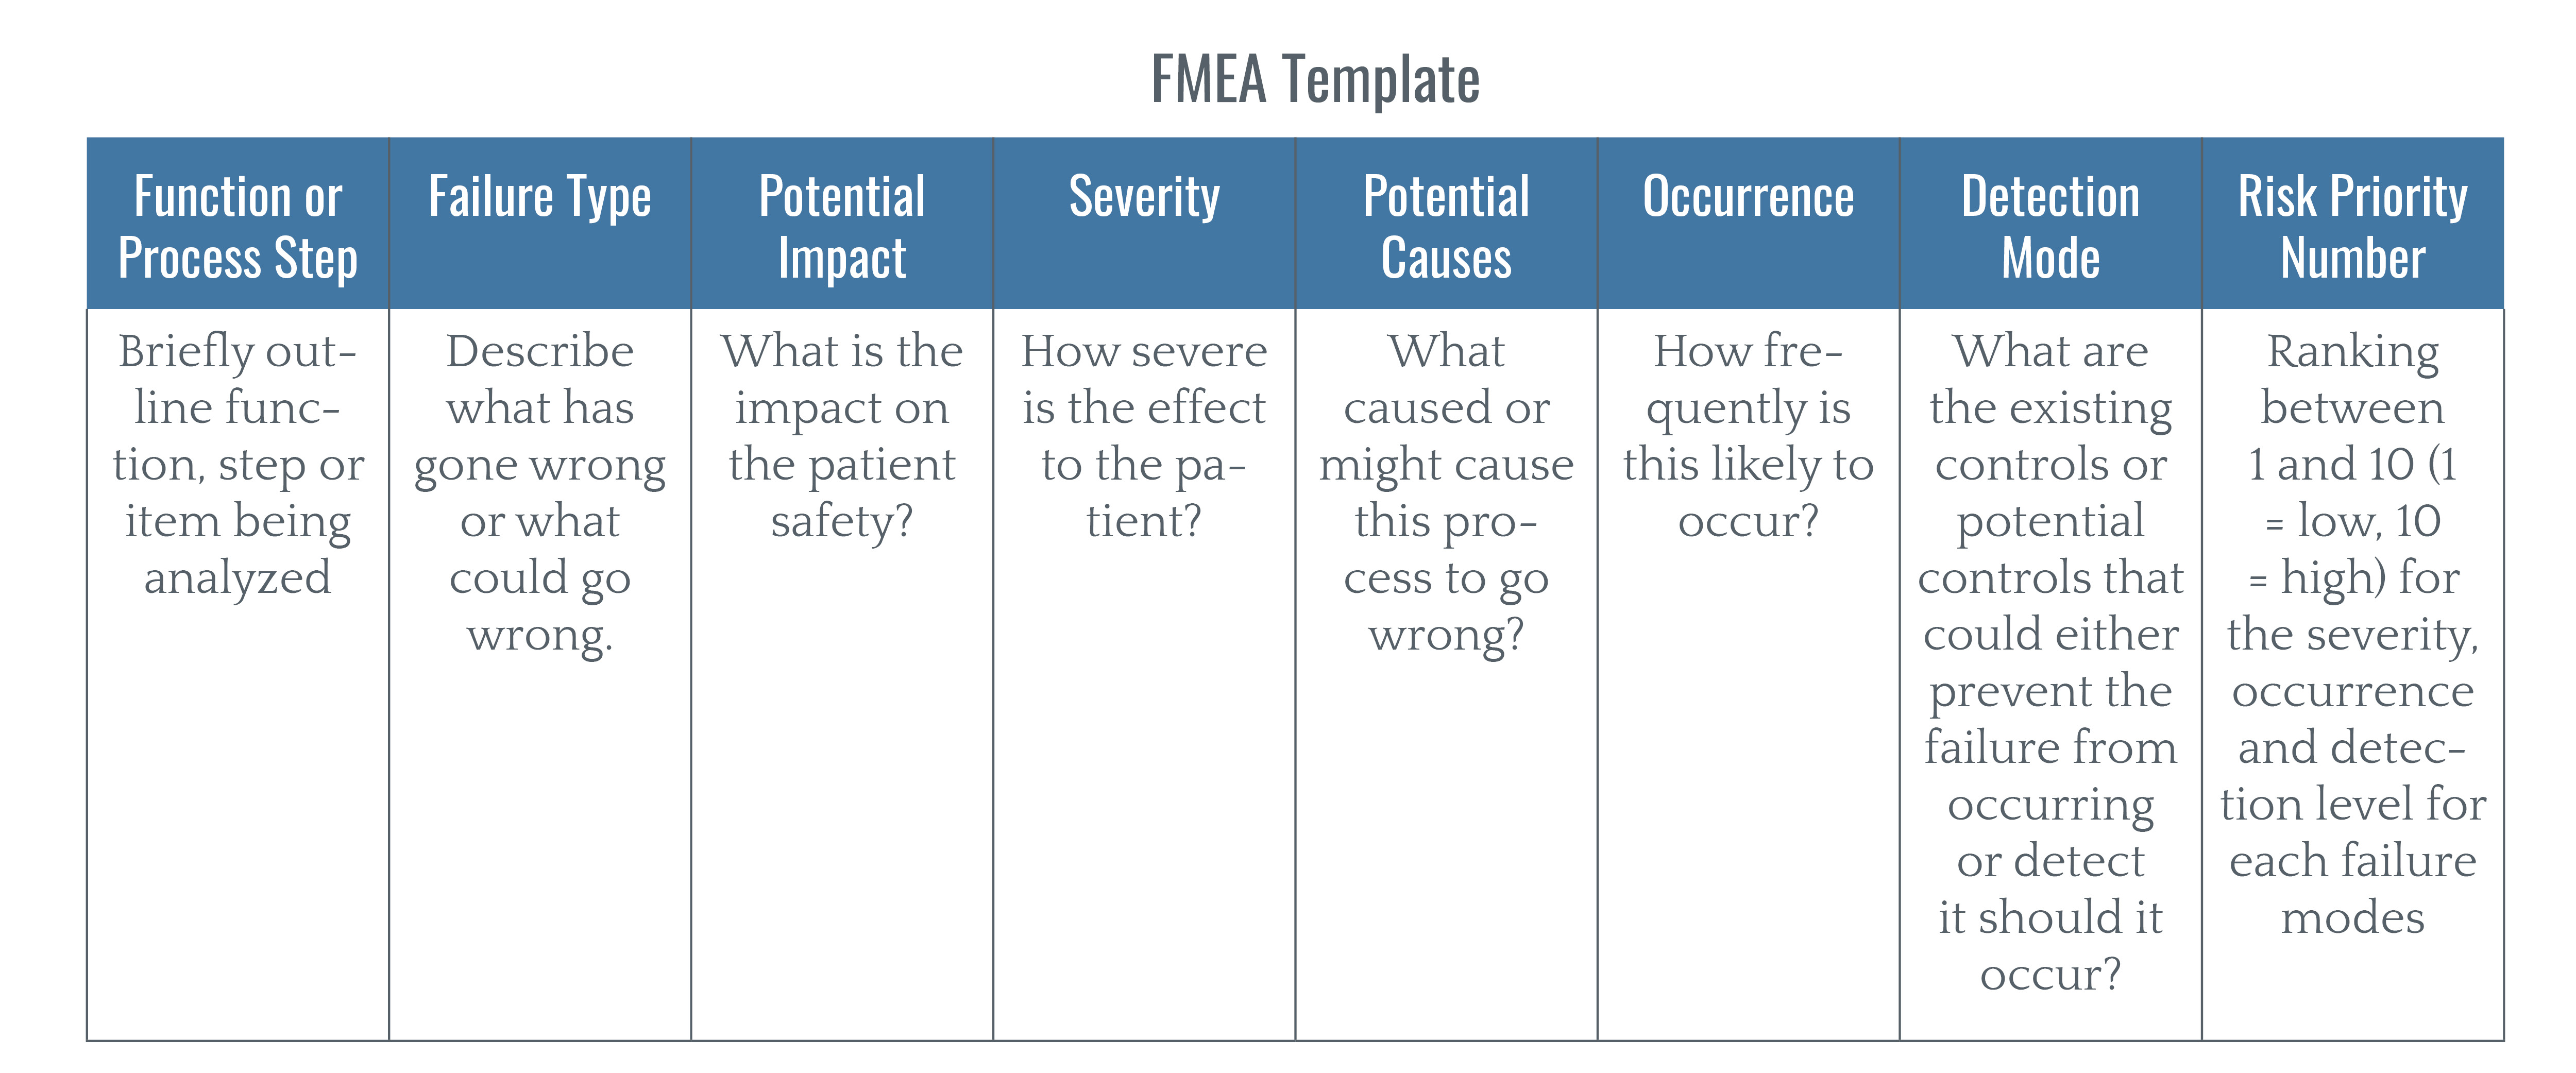 FMEA Template updated